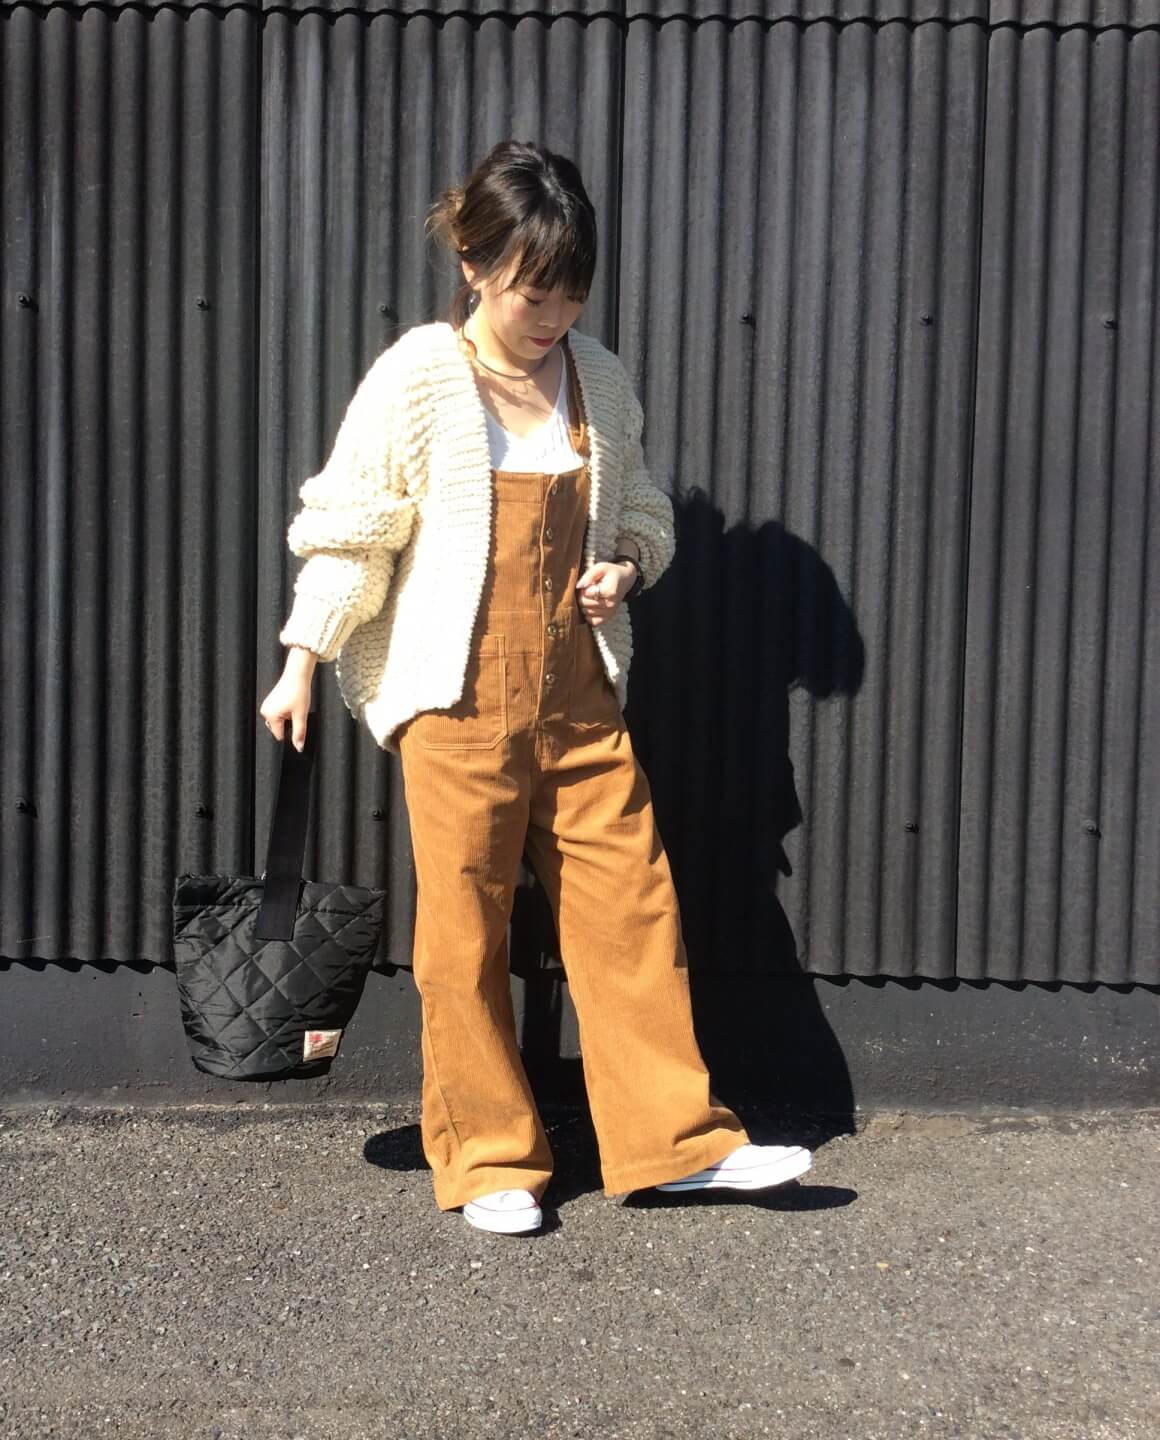 OVERALLS STYLE